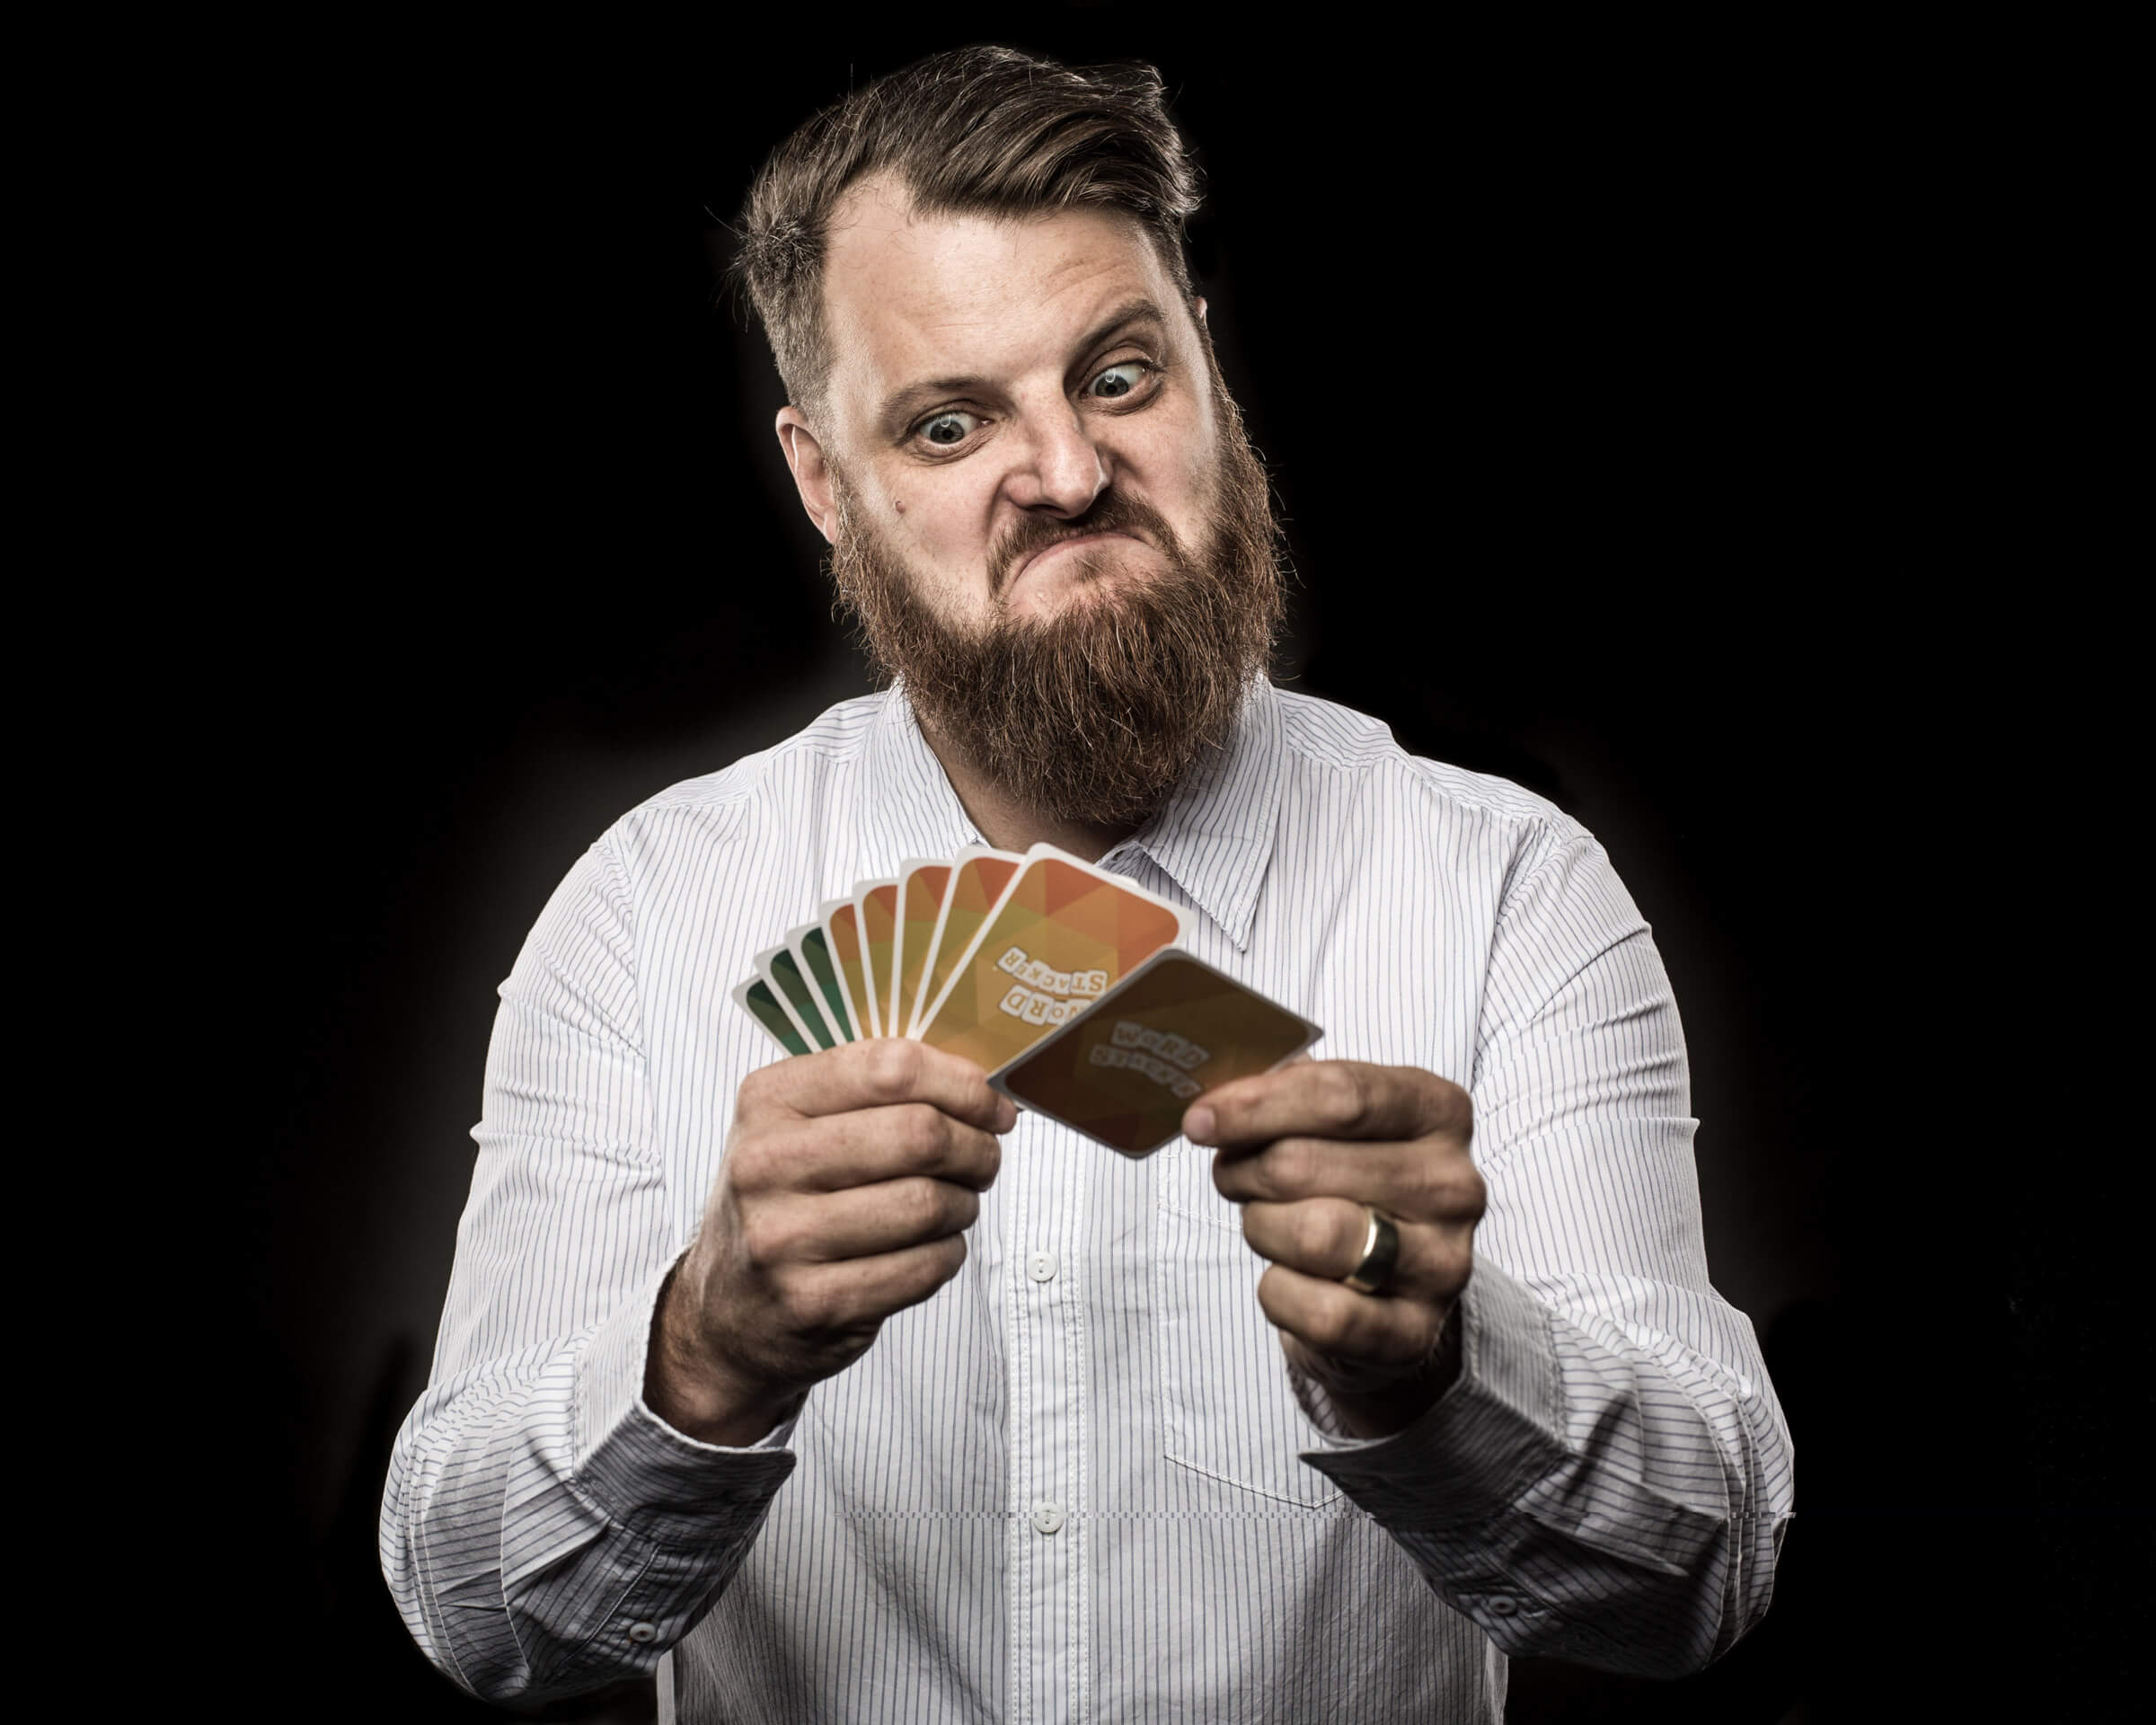 headshot-man playing a card game with puzzled look